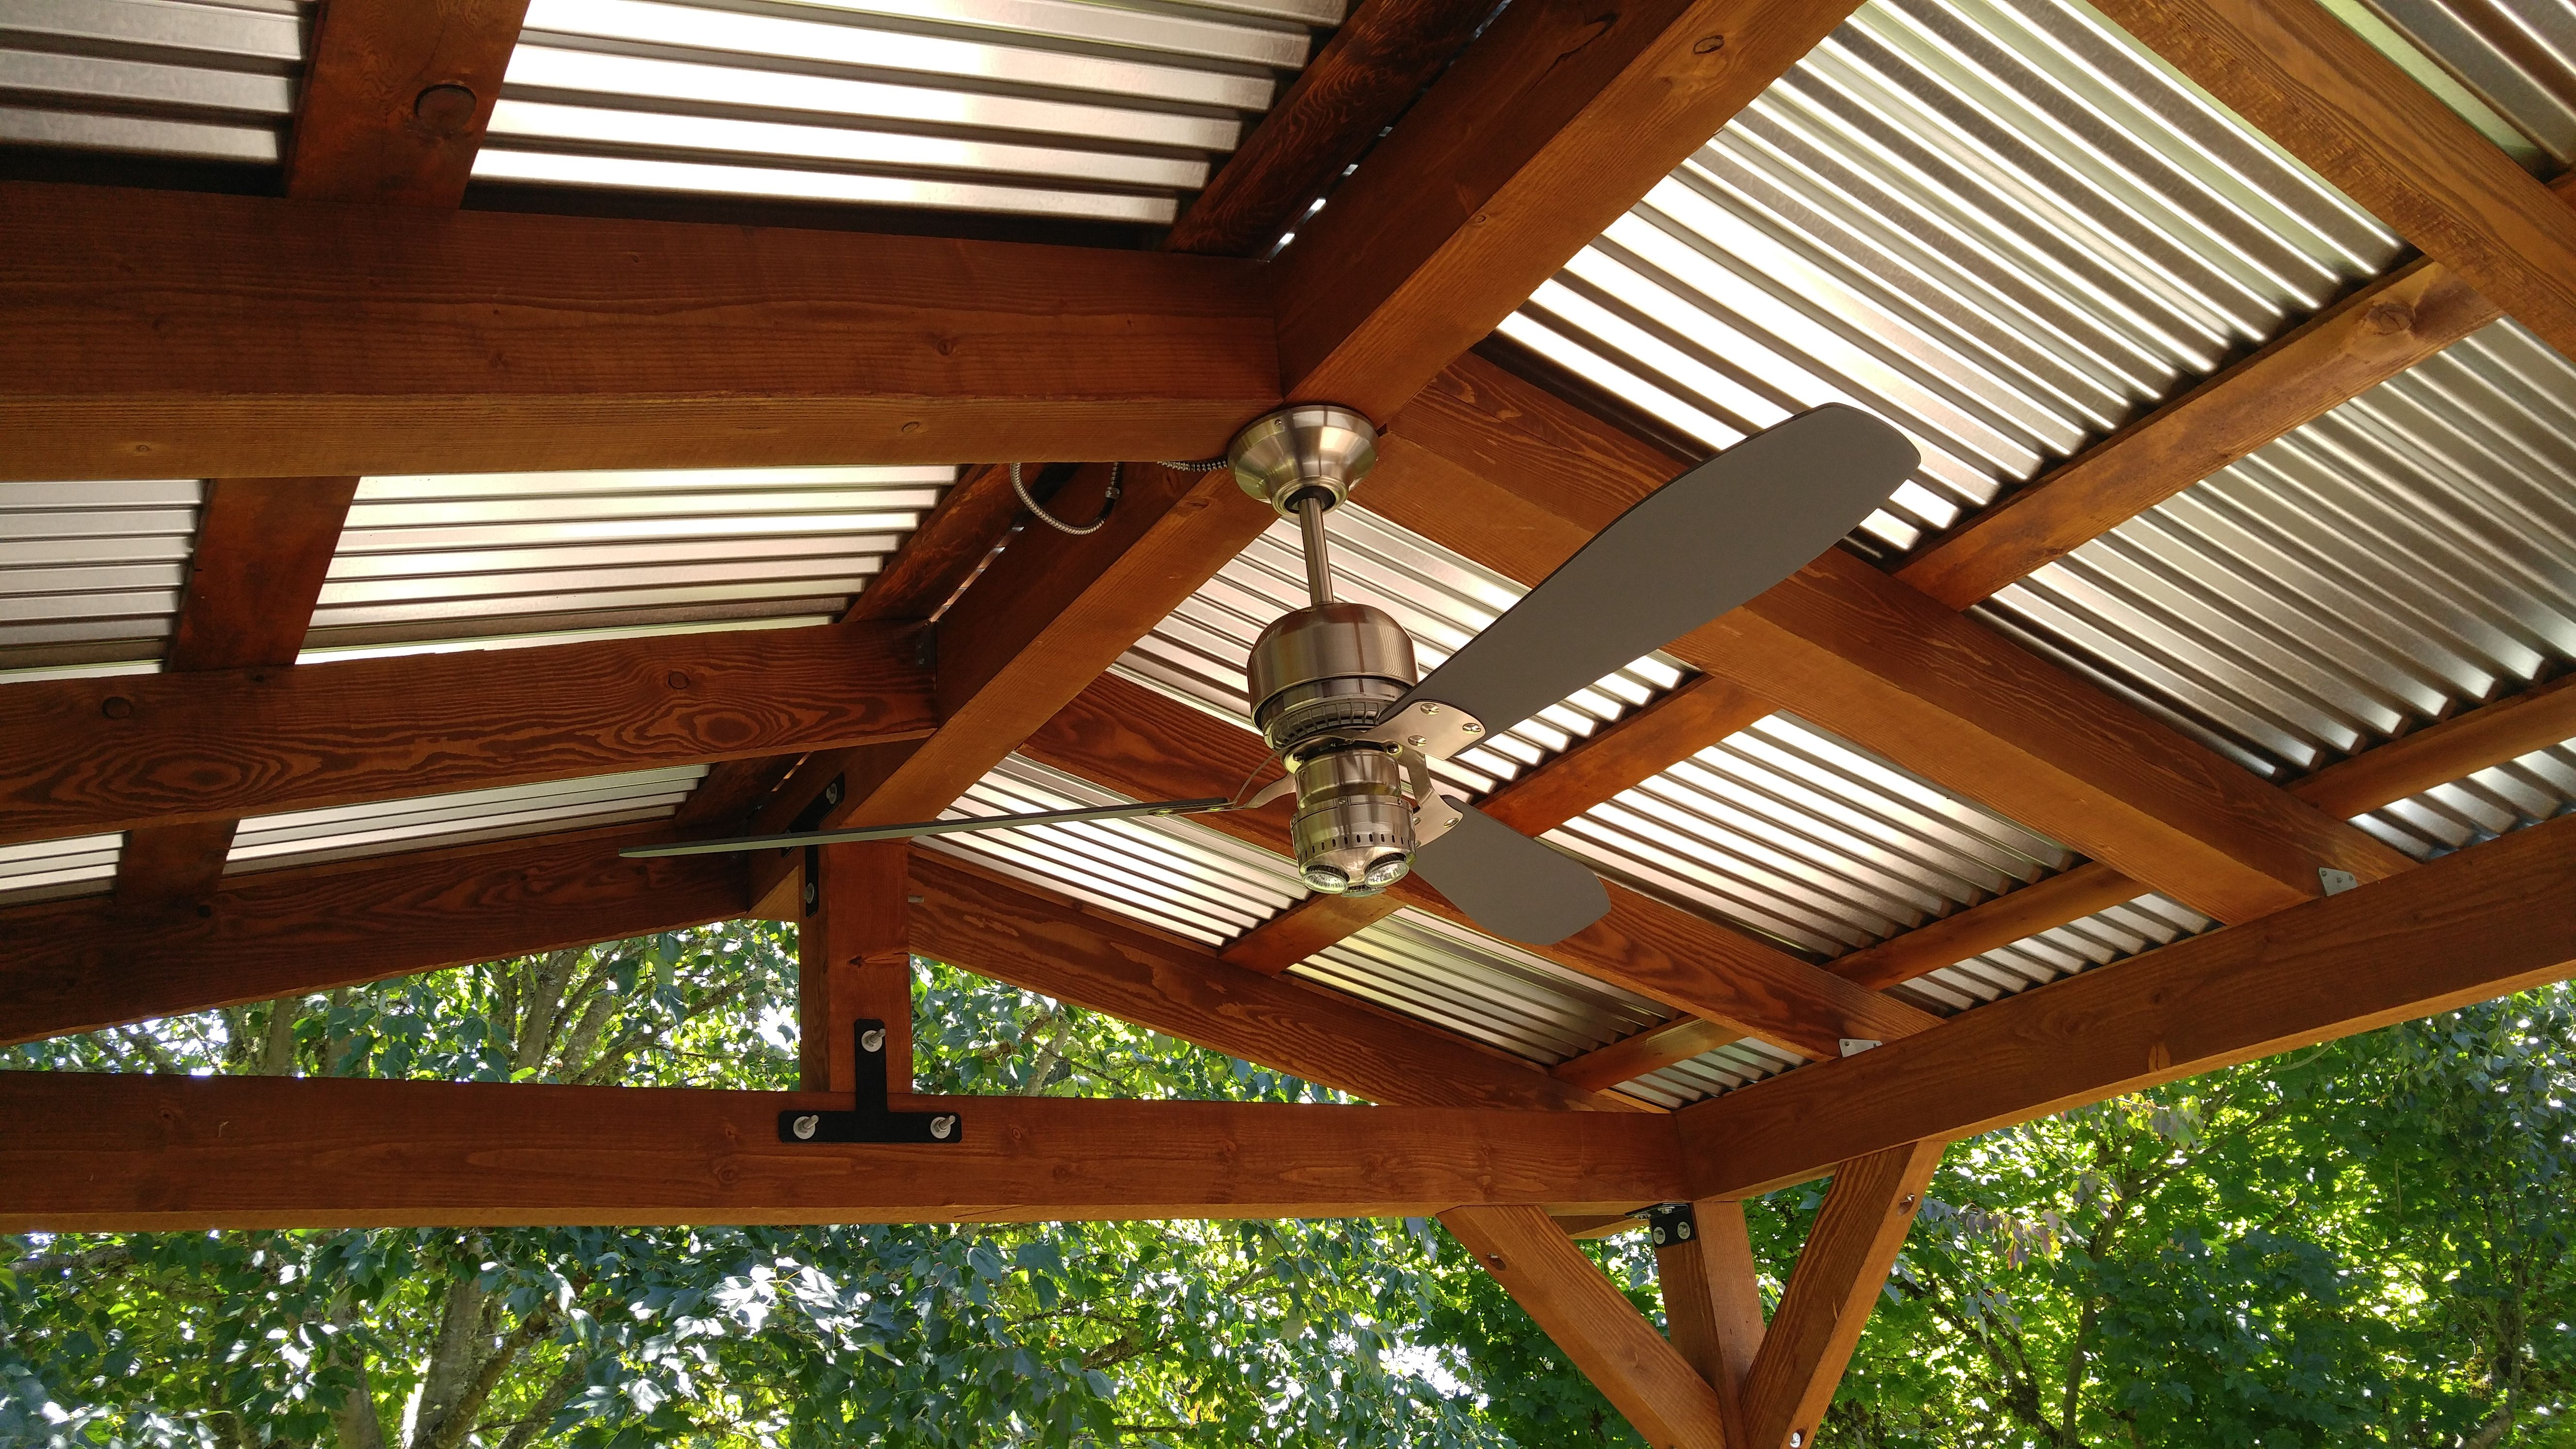 New Patio Cover Corrugated Metal Roof And Industrial Fan Complement The Dark Wood Stain Metal Patio Covers Corrugated Metal Roof Pergola